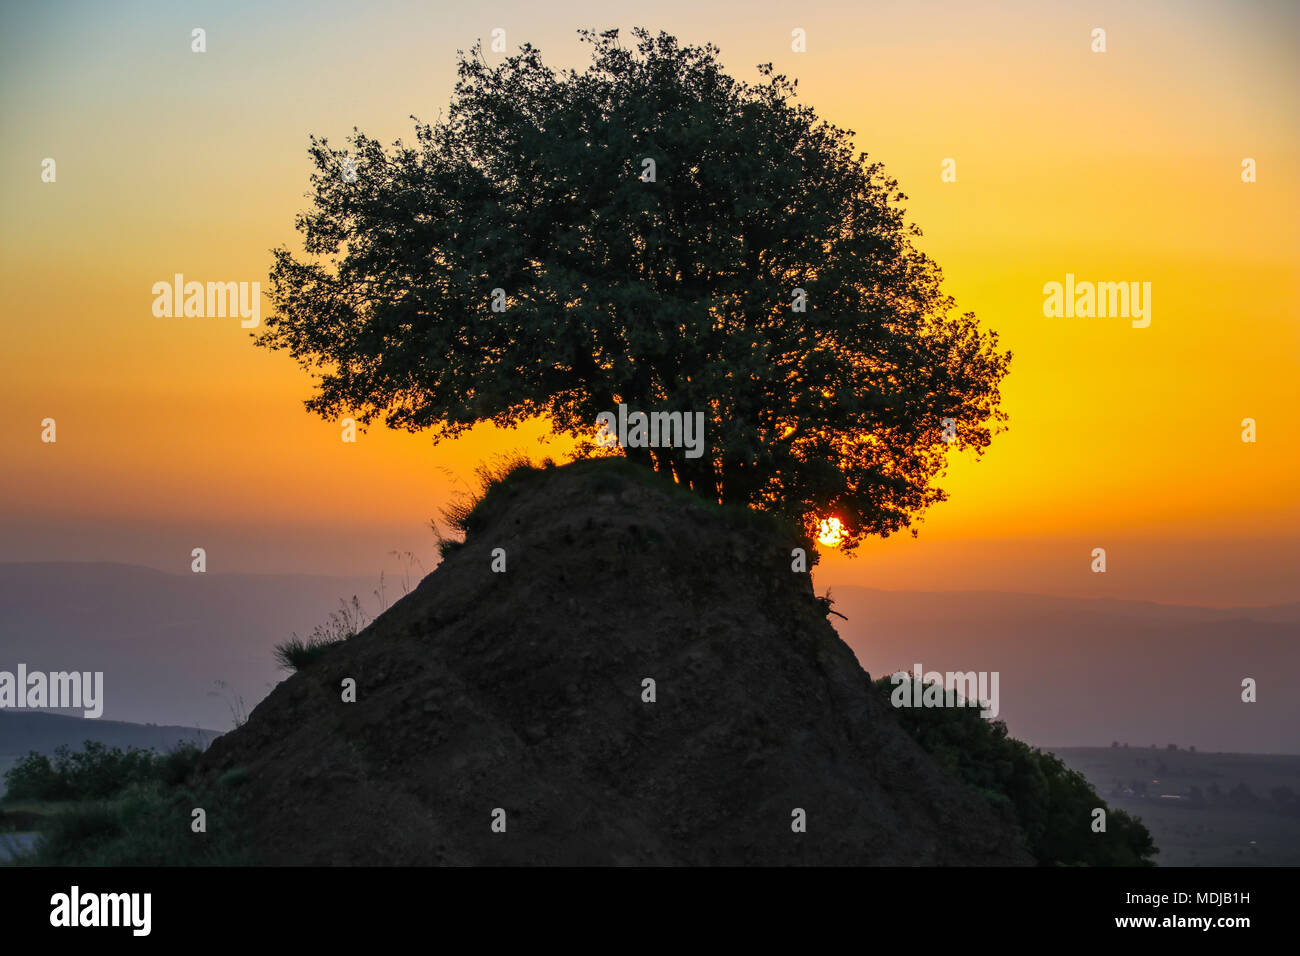 Sunset. The sun shines through the branches of a tree - Stock Image